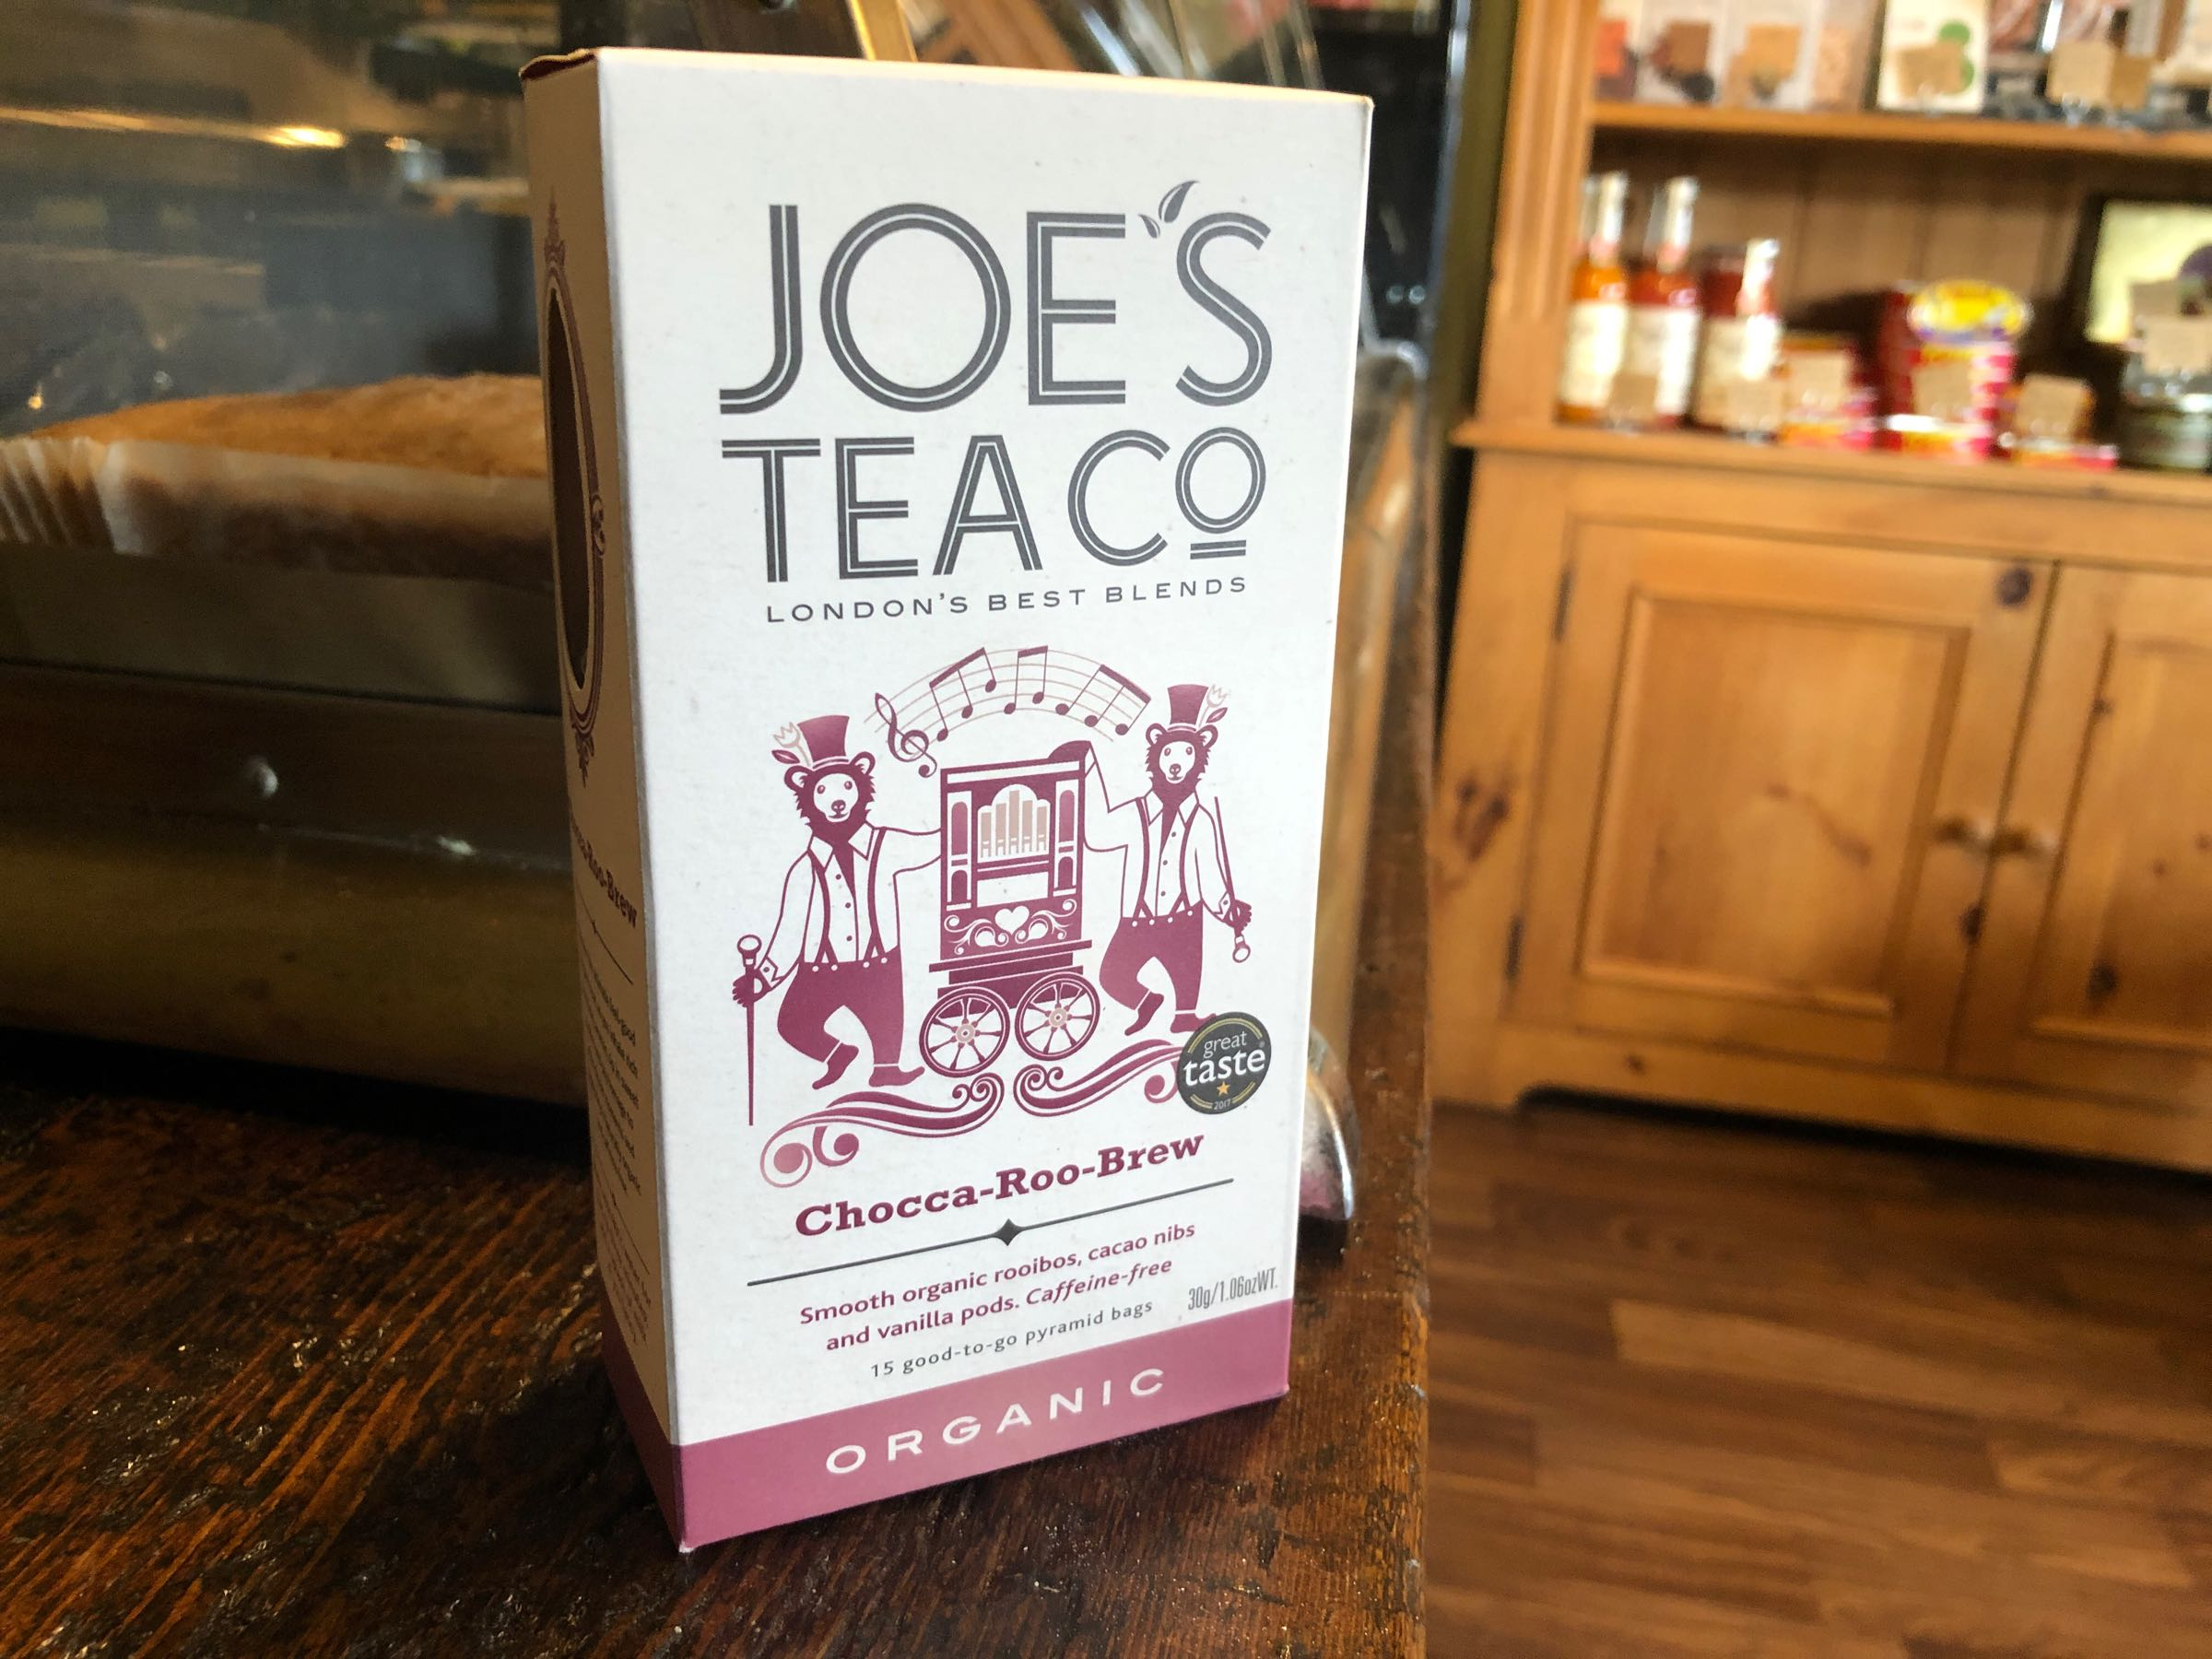 Joe's Tea Co. Chocca-Roo-Brew - Organic